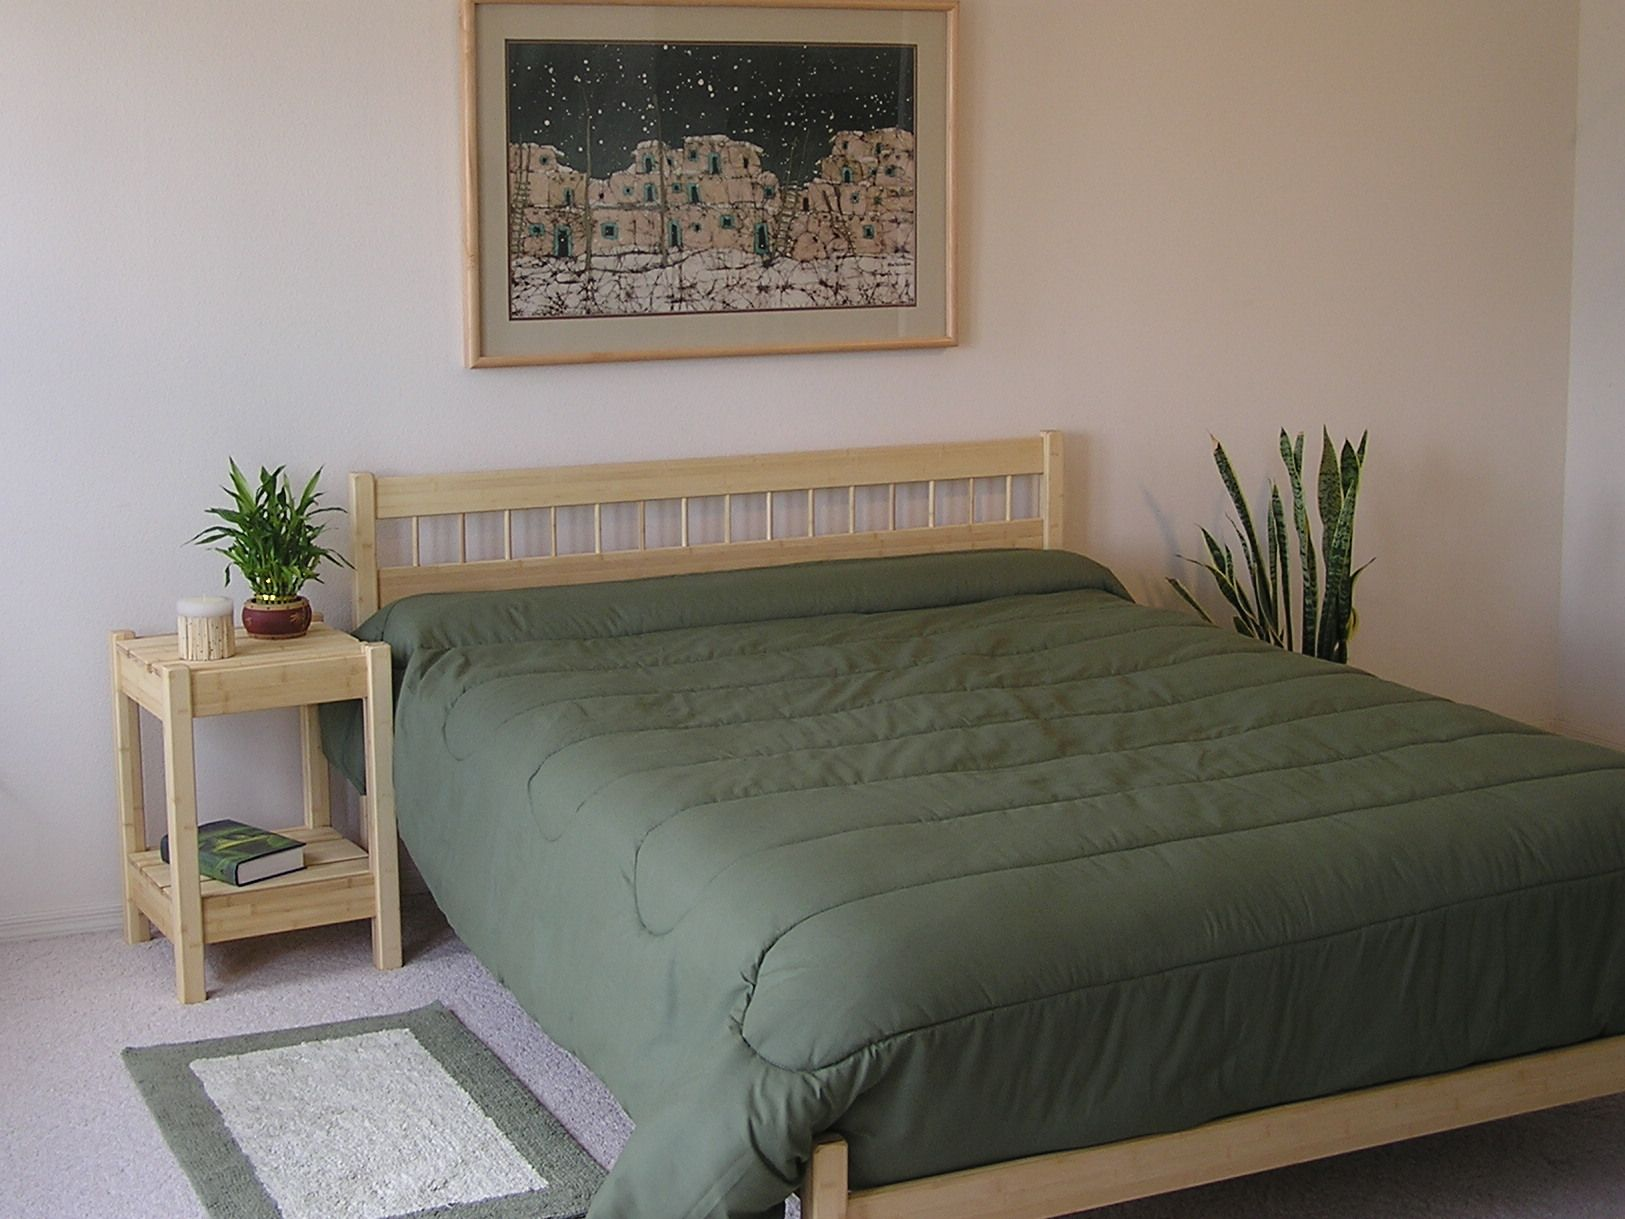 Sandia Bed Table with Ranch Bed Bed, California king